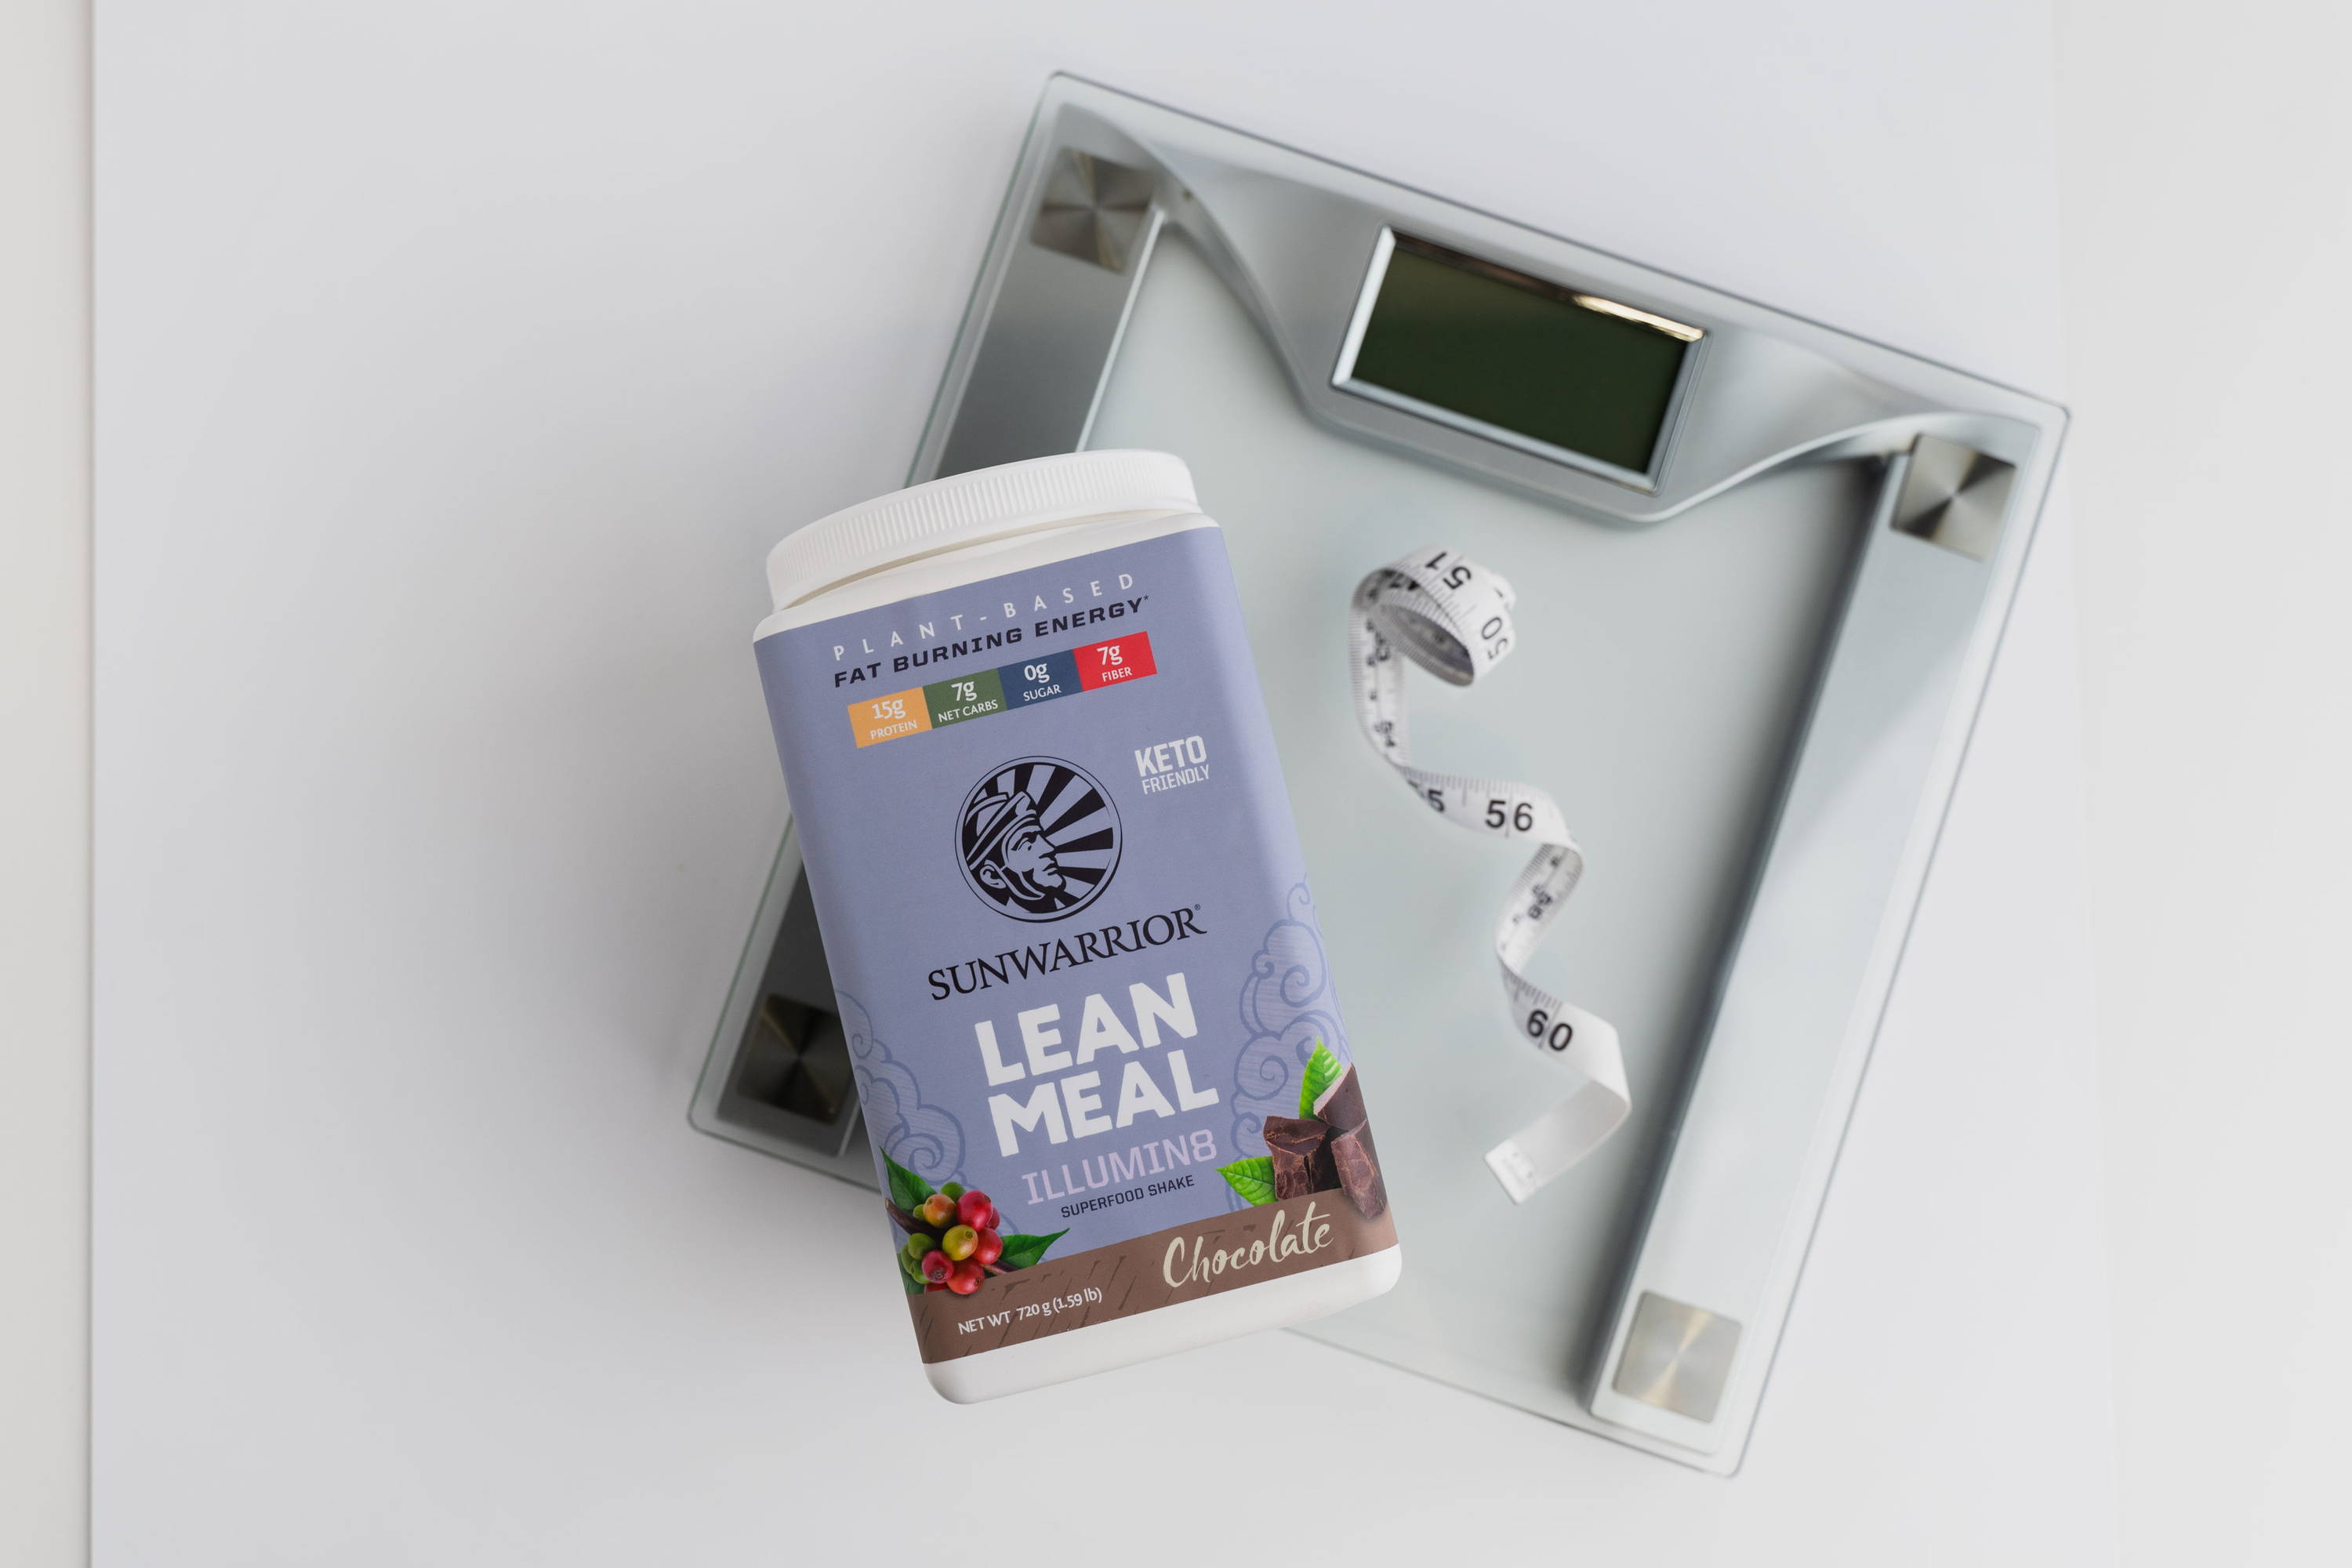 lean meal meal replacement for healthy weight loss and management